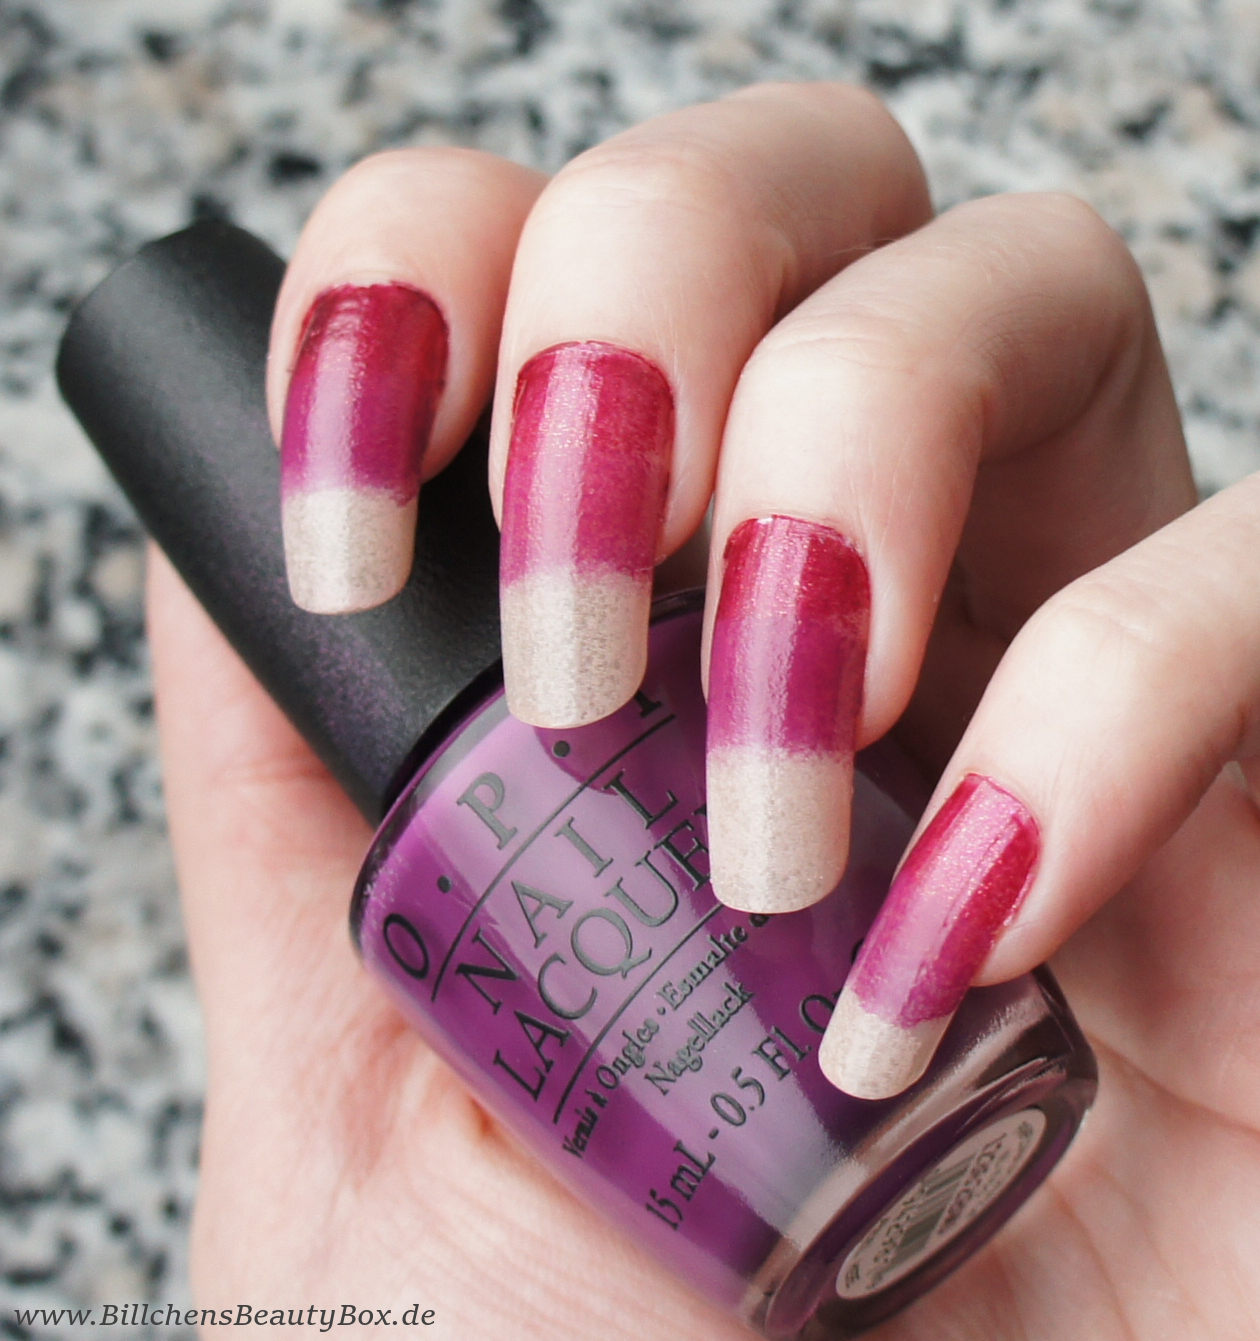 http://www.billchensbeautybox.de/2015/03/blogparade-ready-set-polish-gradient.html